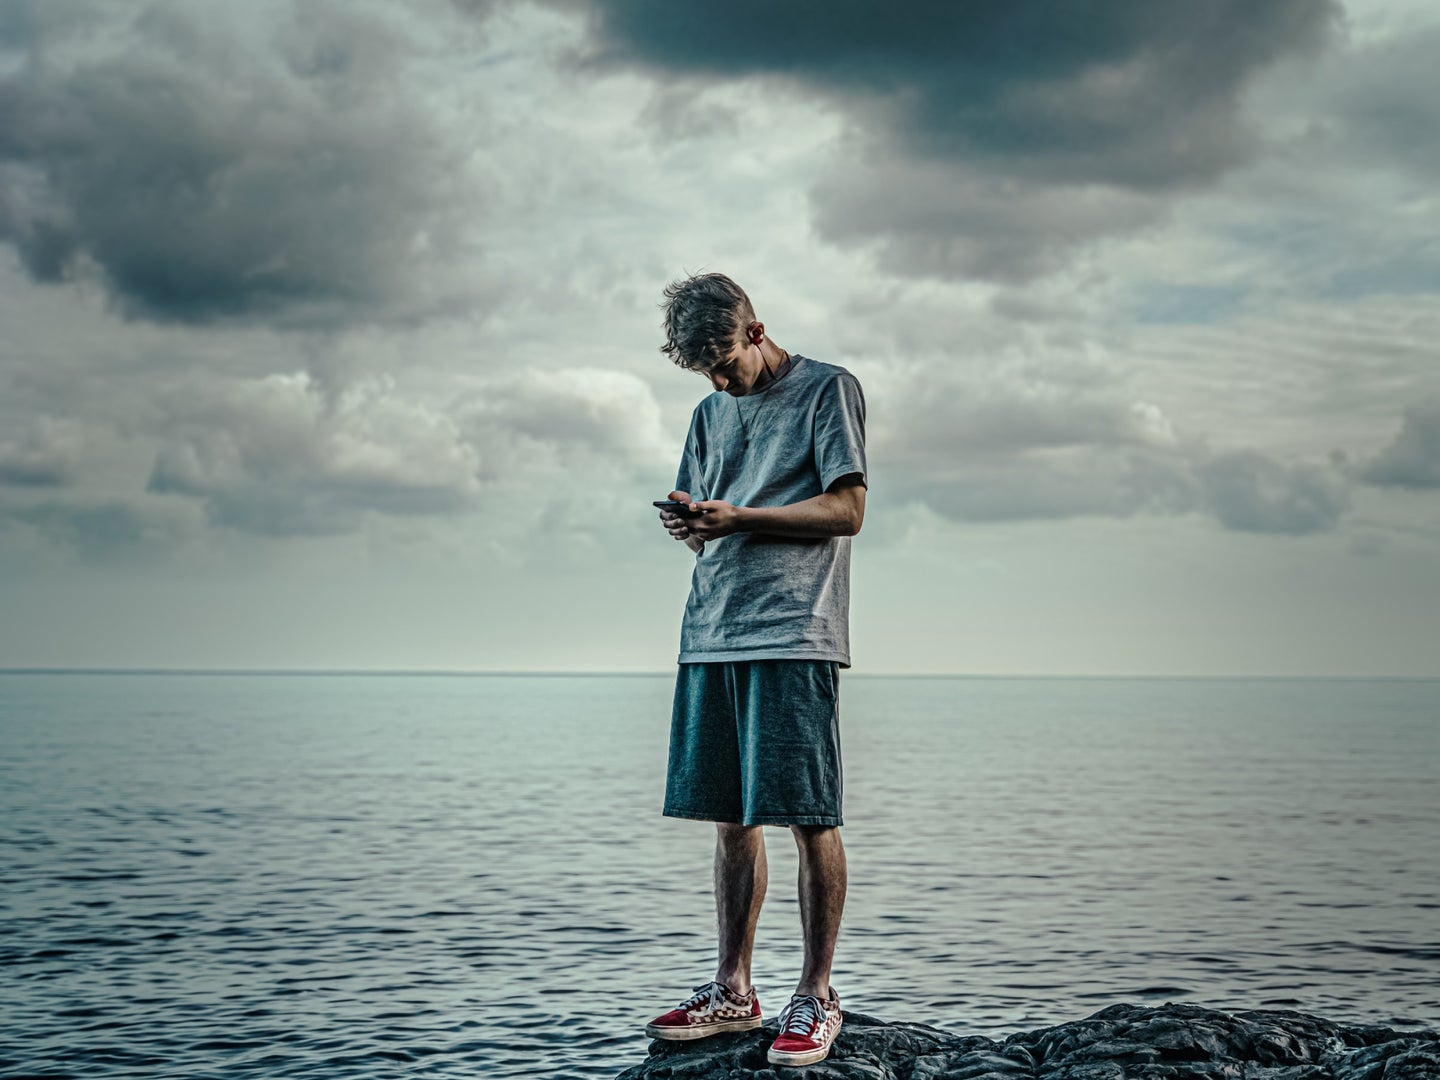 A person standing on a rock by the water under cloudy skies while looking at his phone—hopefully he has a good weather app.